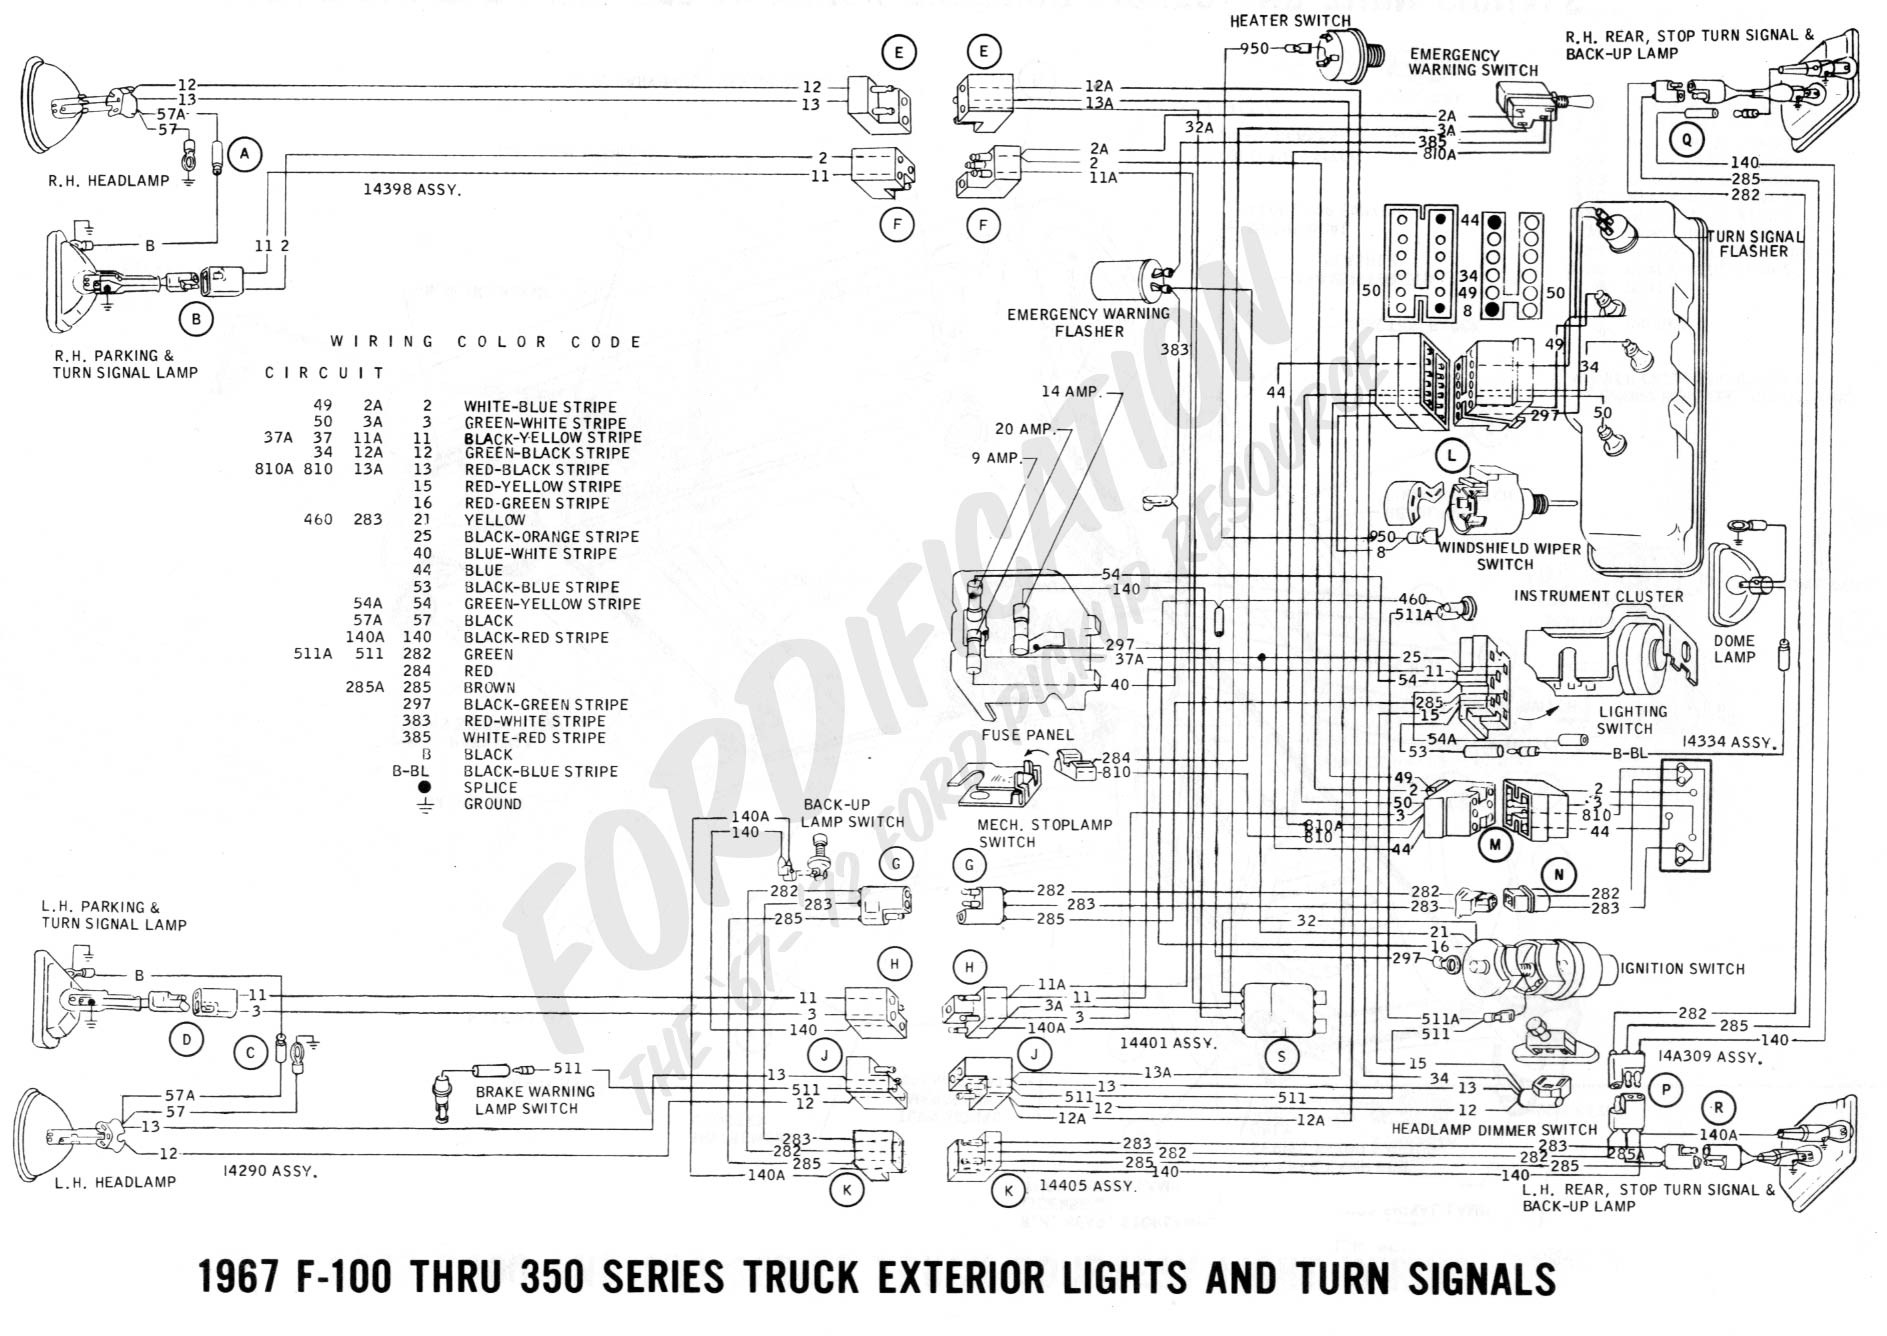 Ford F250 Trailer Wiring Diagram ford Truck Technical Drawings and Schematics Section H Wiring Of Ford F250 Trailer Wiring Diagram